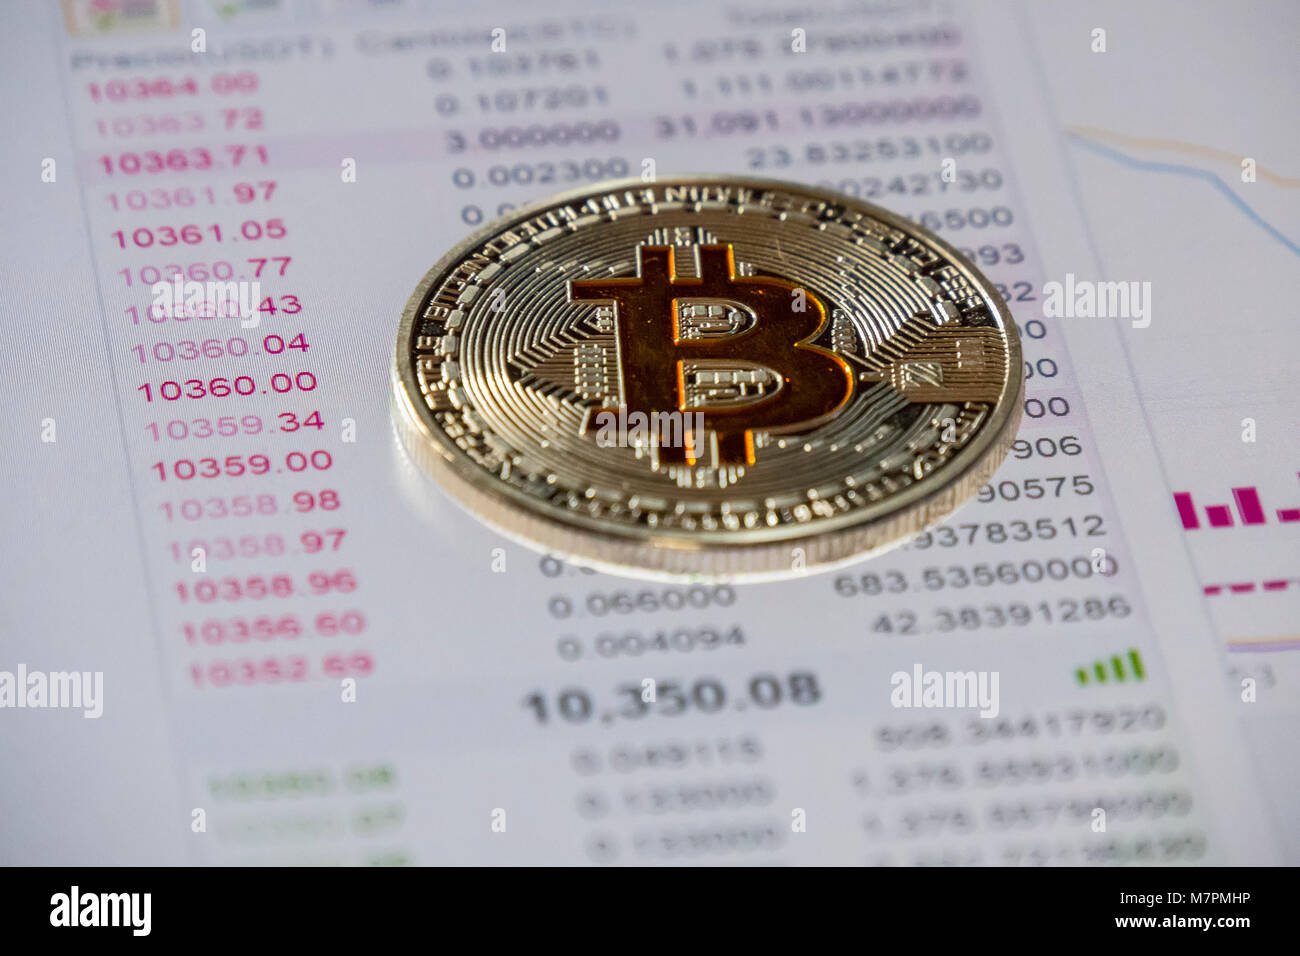 Tron Cryptocurrency Stockfotos Tron Cryptocurrency Bilder Alamy